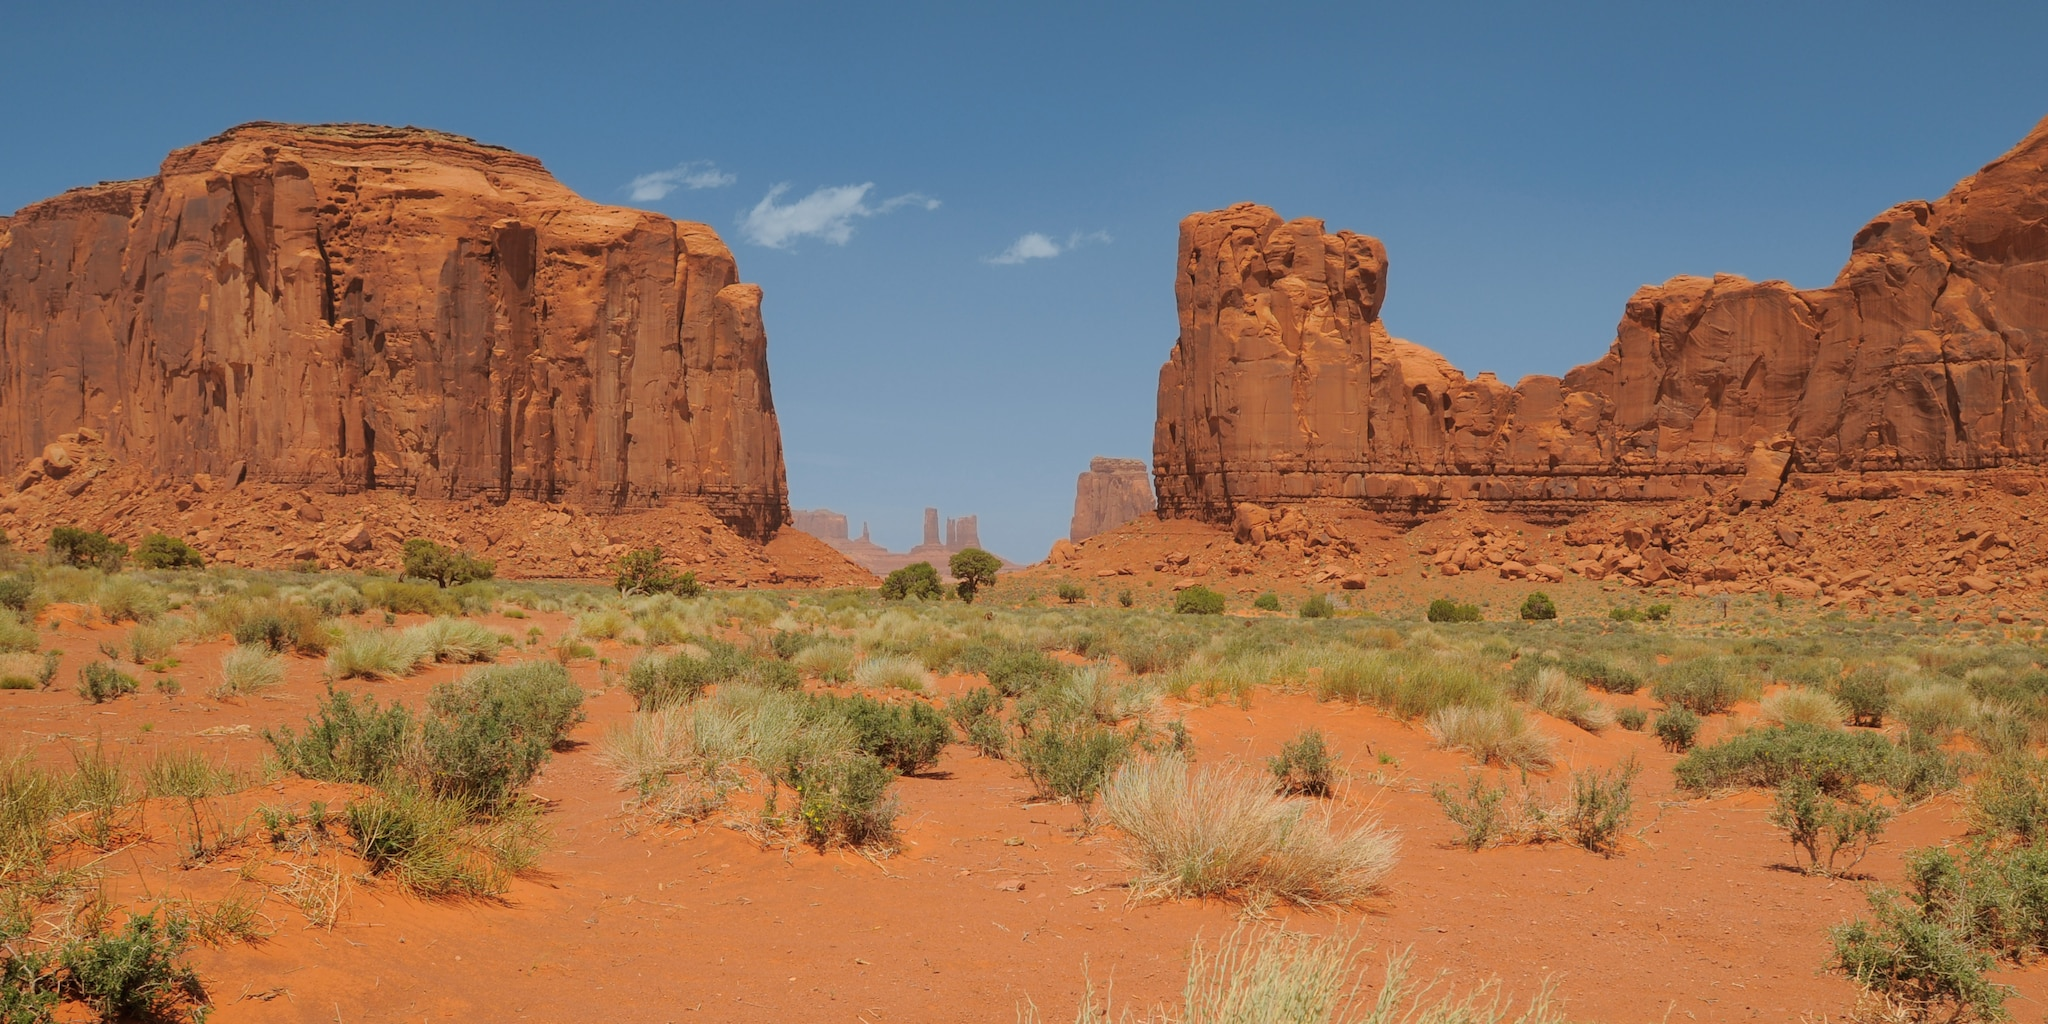 The buttes and mesas of Monument Valley